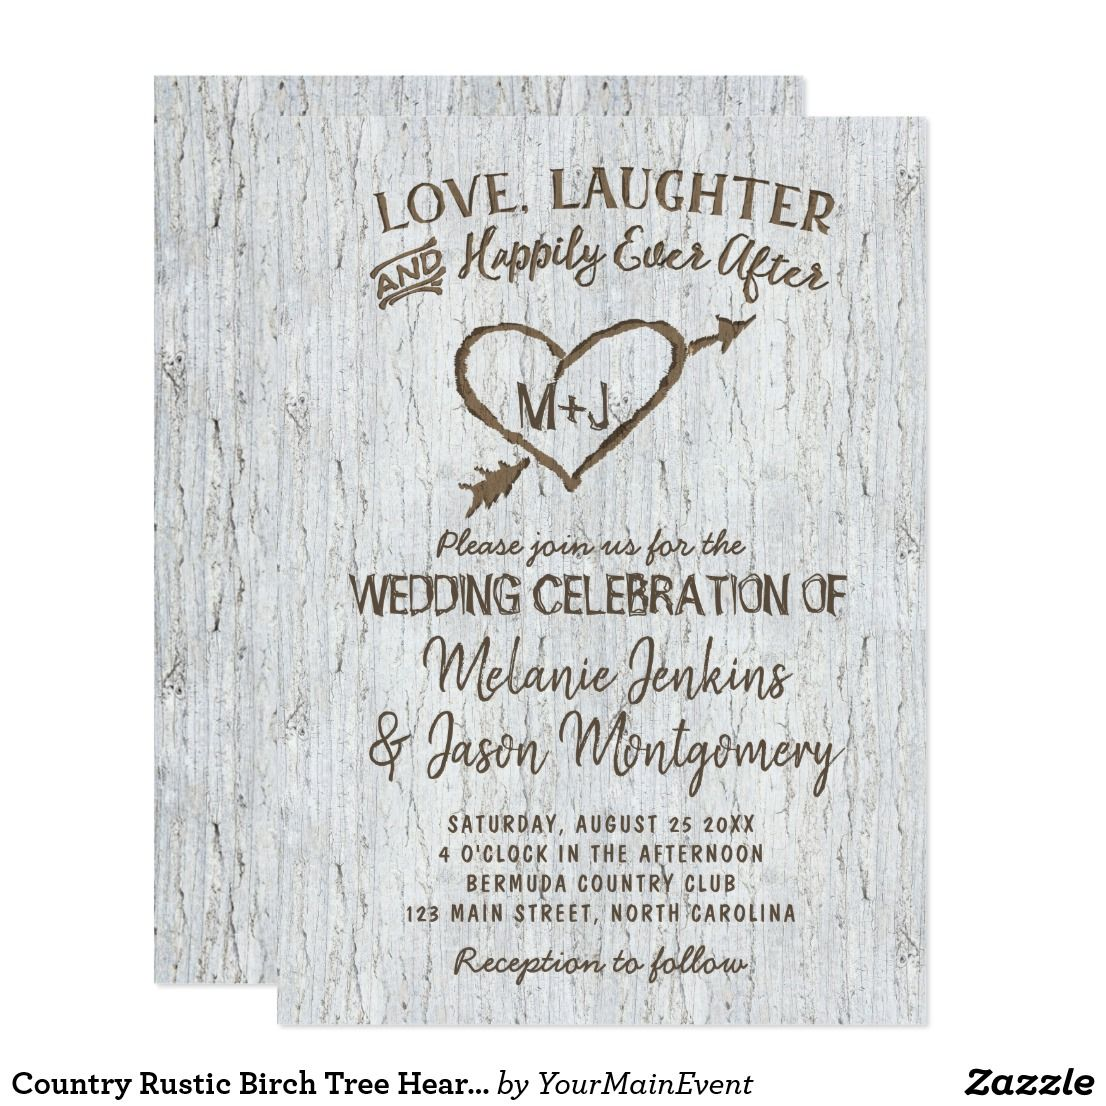 Country Rustic Birch Tree Heart Wedding Invitation | Heart wedding ...